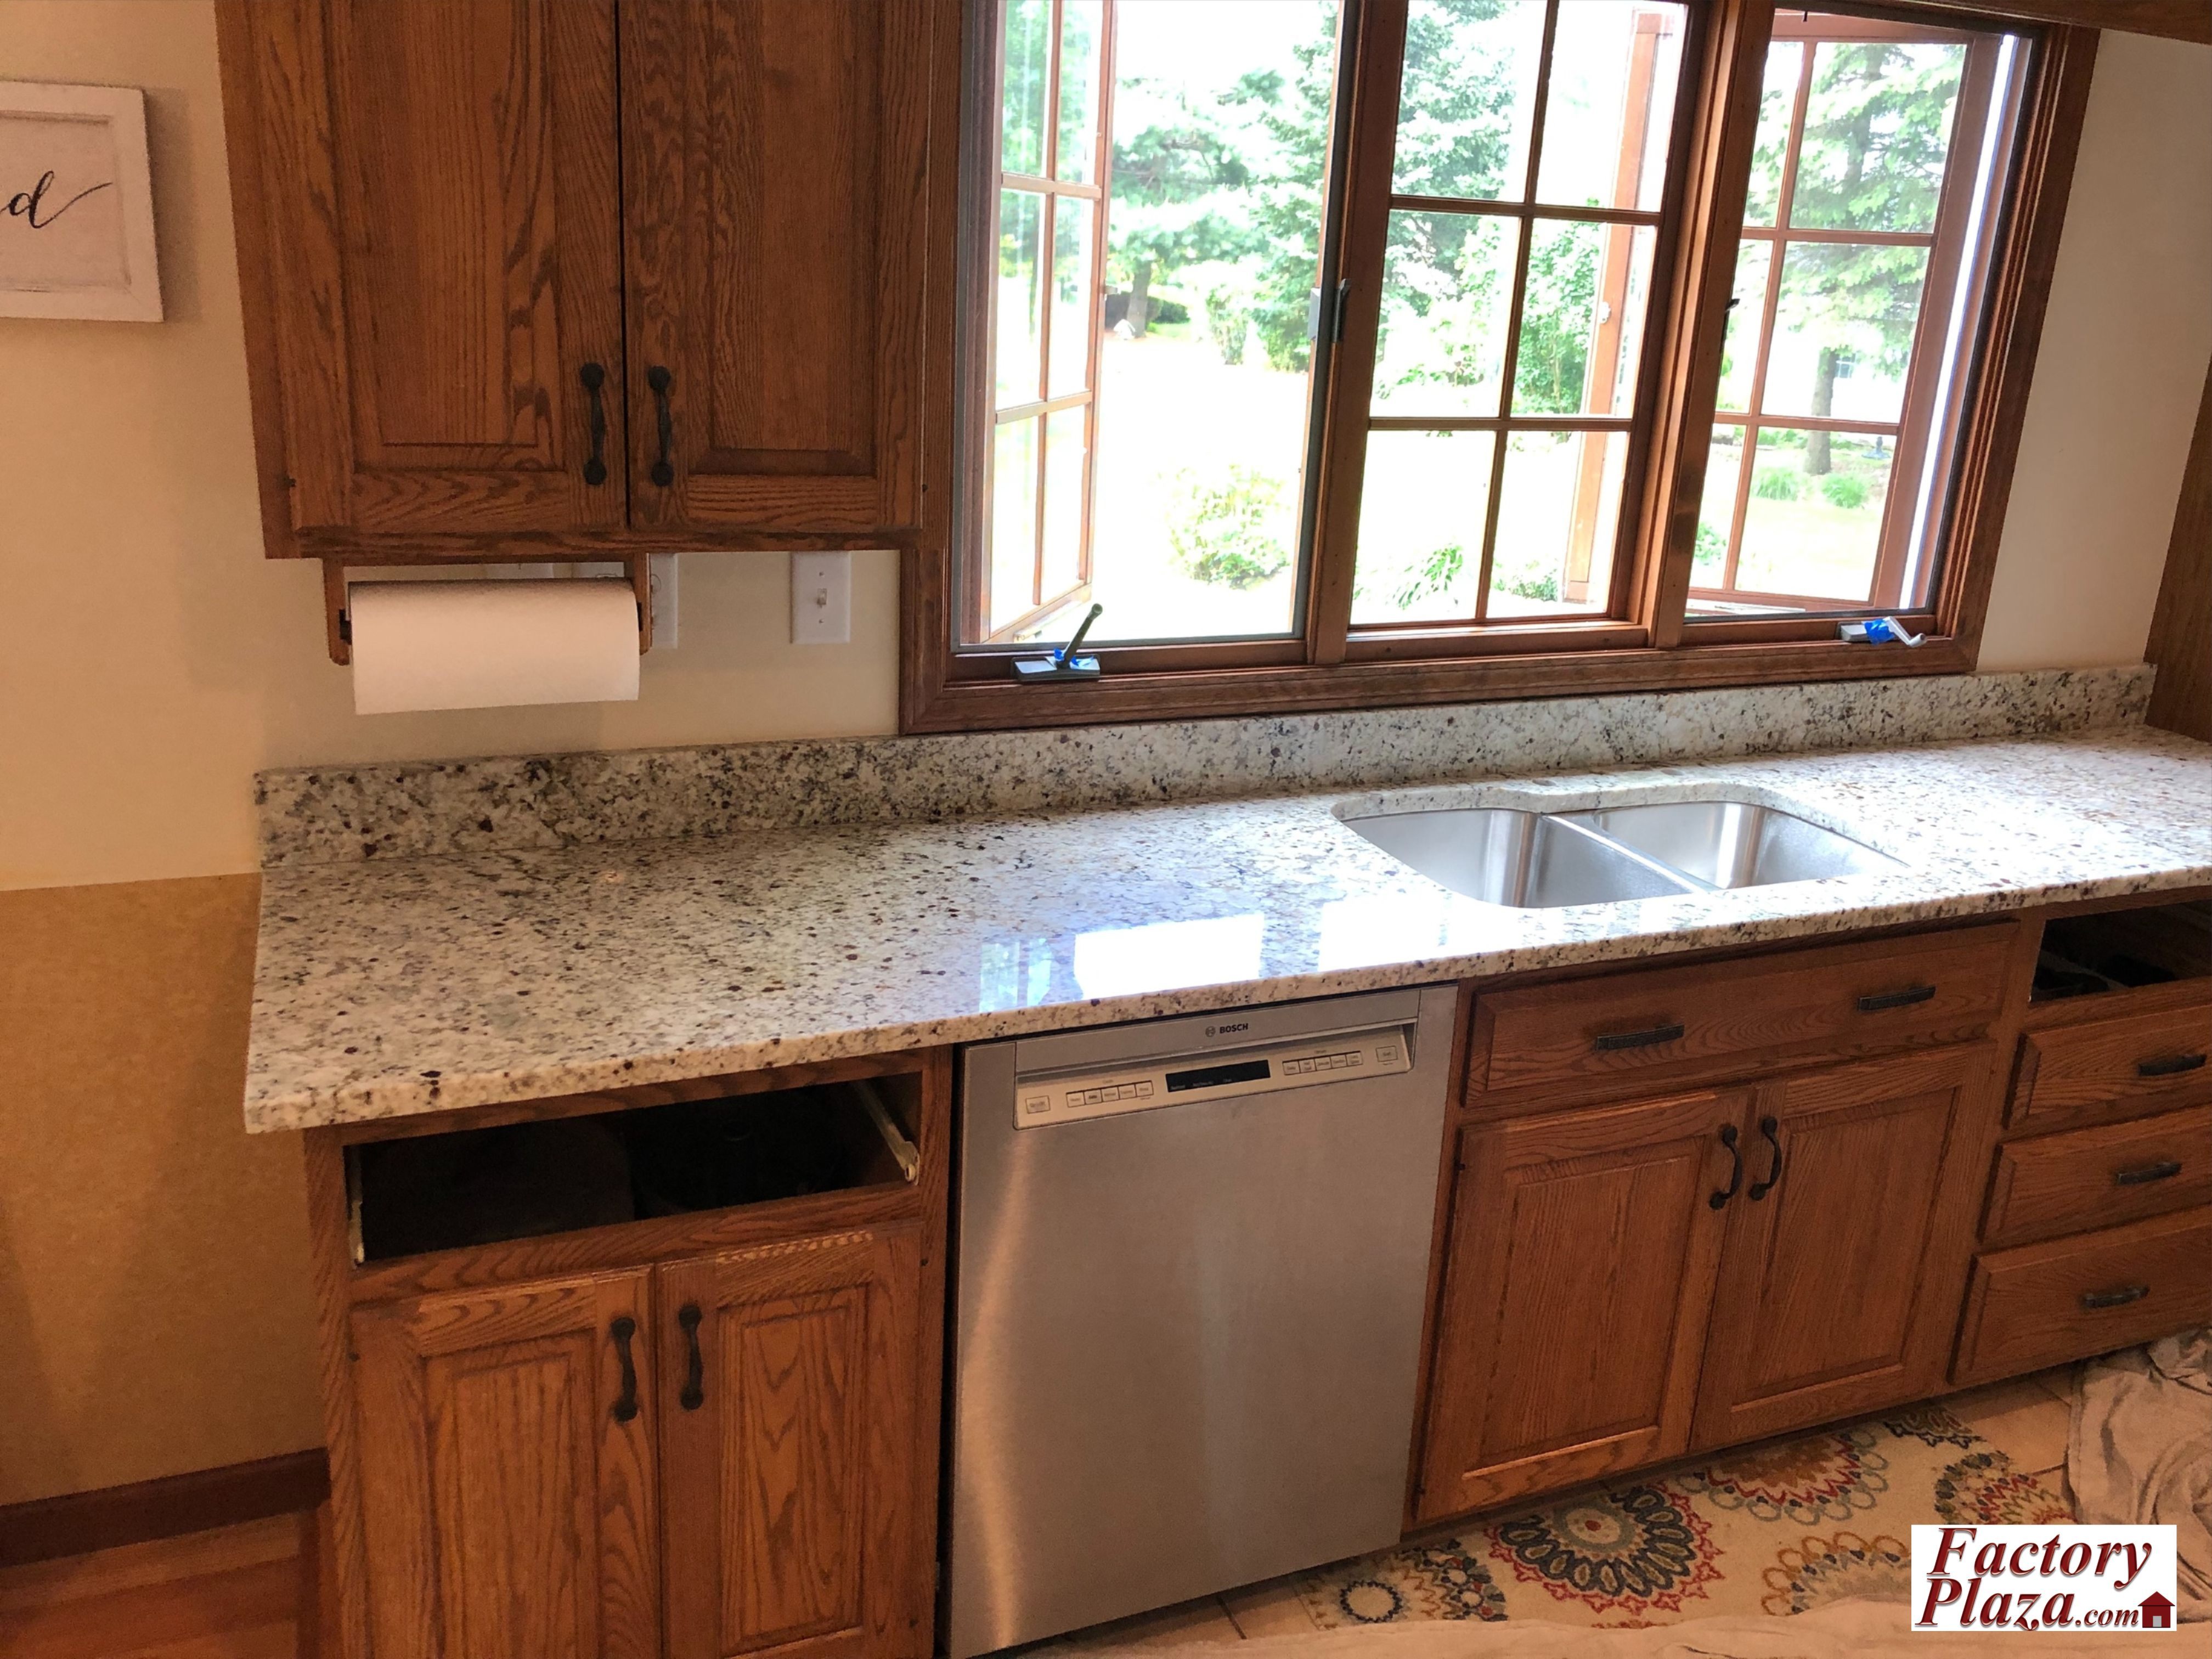 Factory Plaza Inc Leads The Countertop Fabrication And